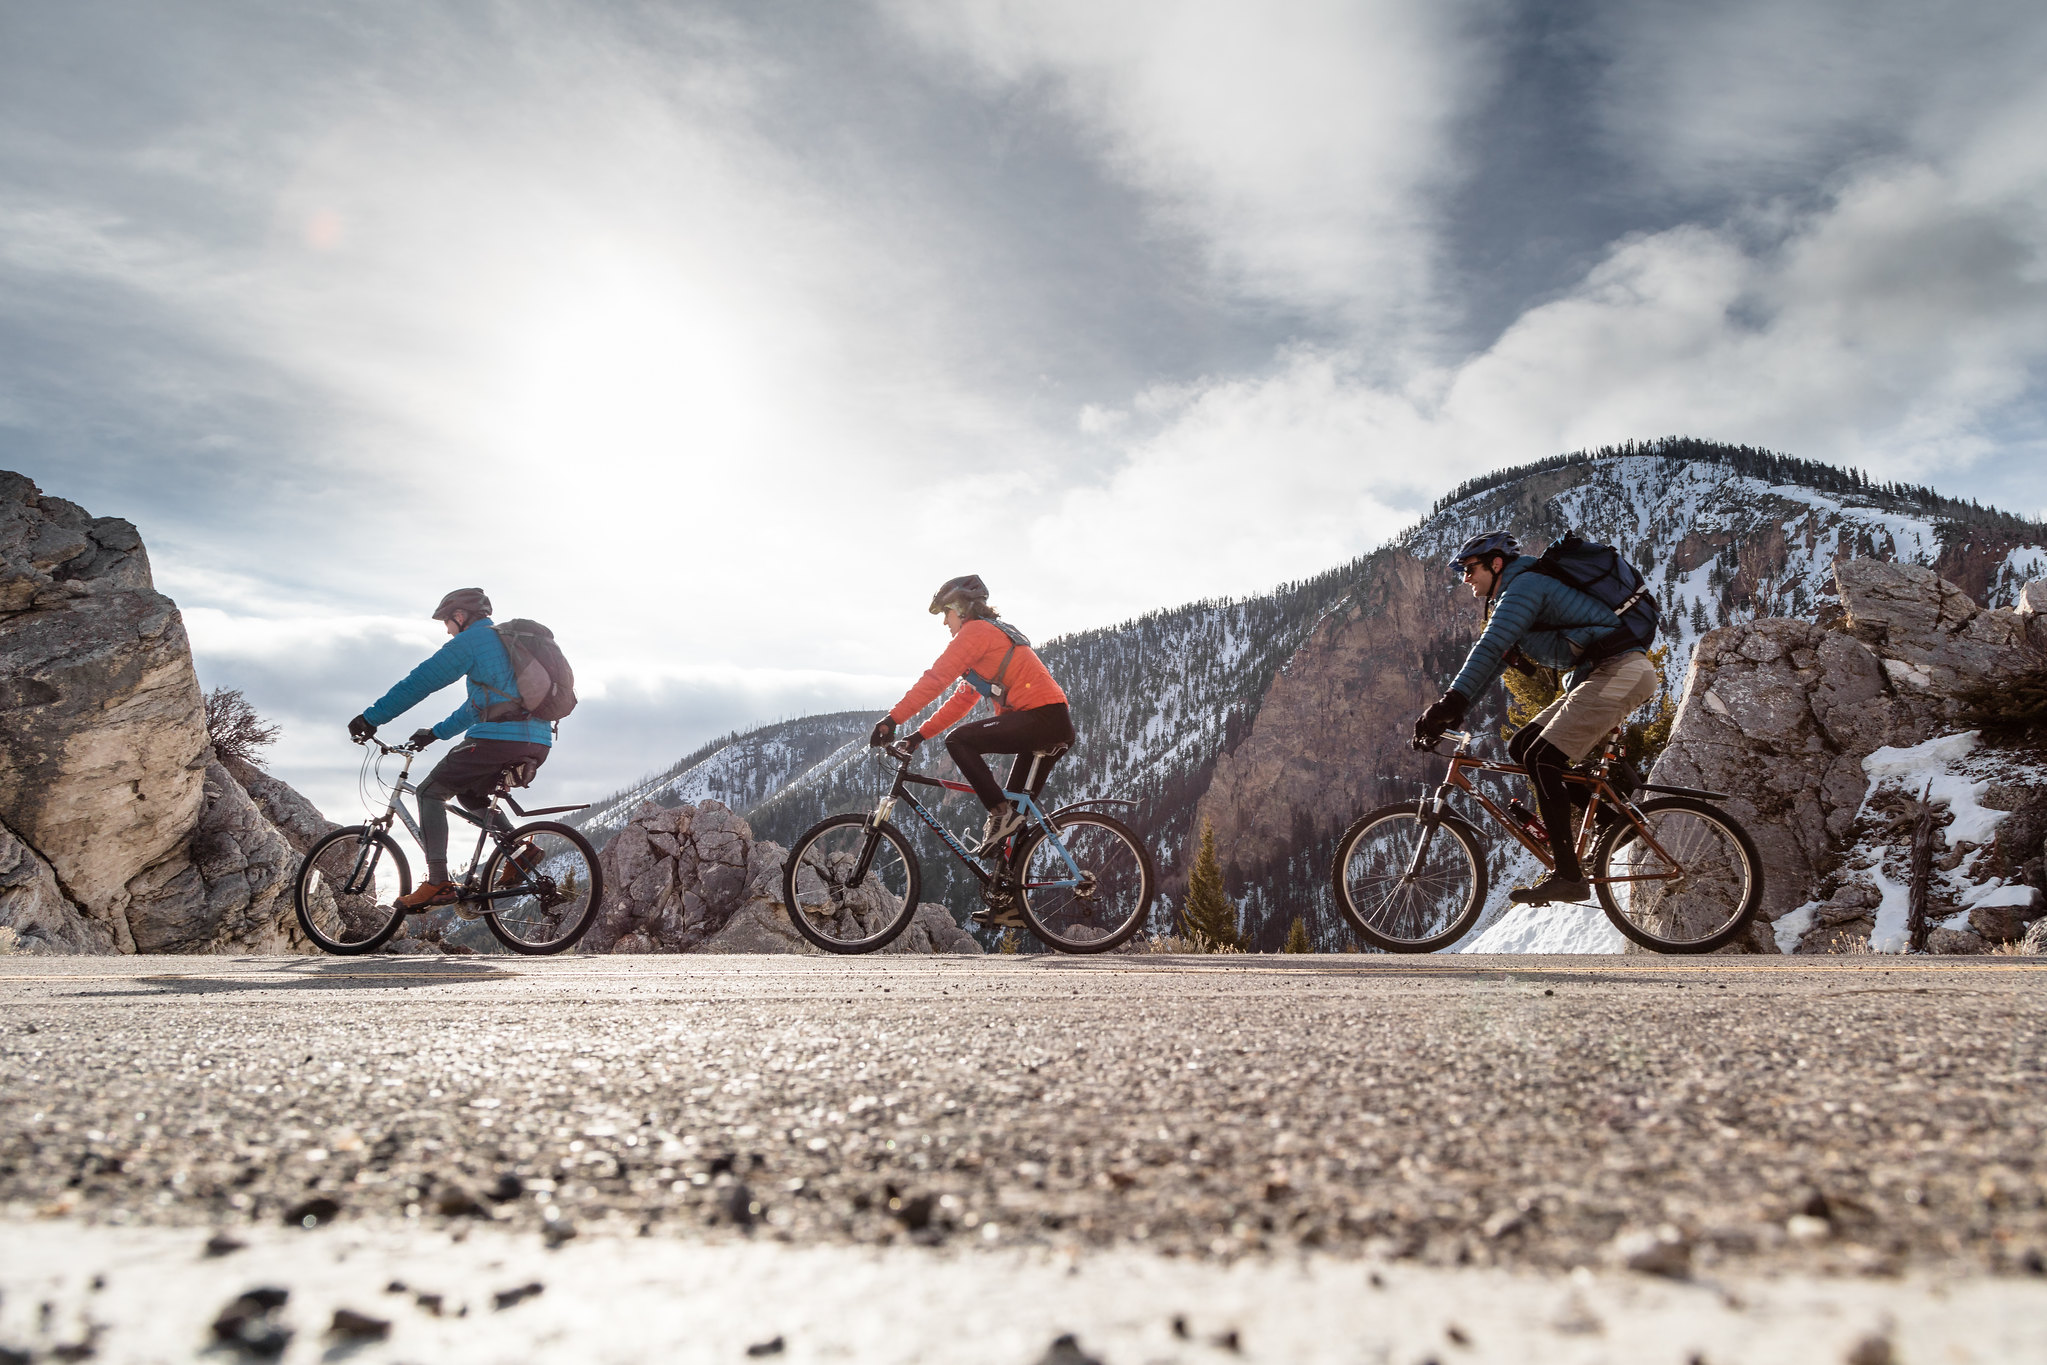 Free download high resolution image - free image free photo free stock image public domain picture -Cycling in Yellowstone National Park